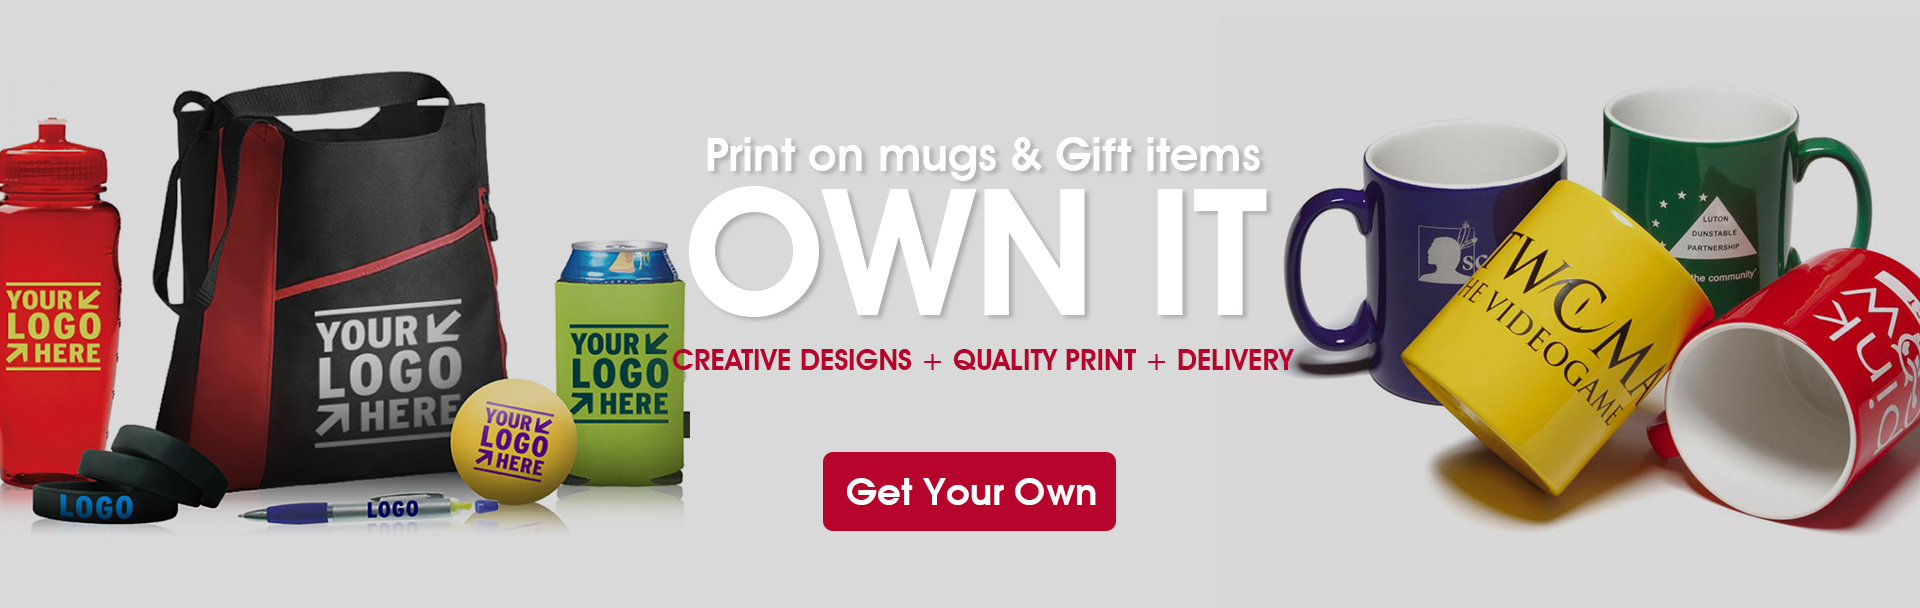 Corporate Gifts Printing in noida sector 57